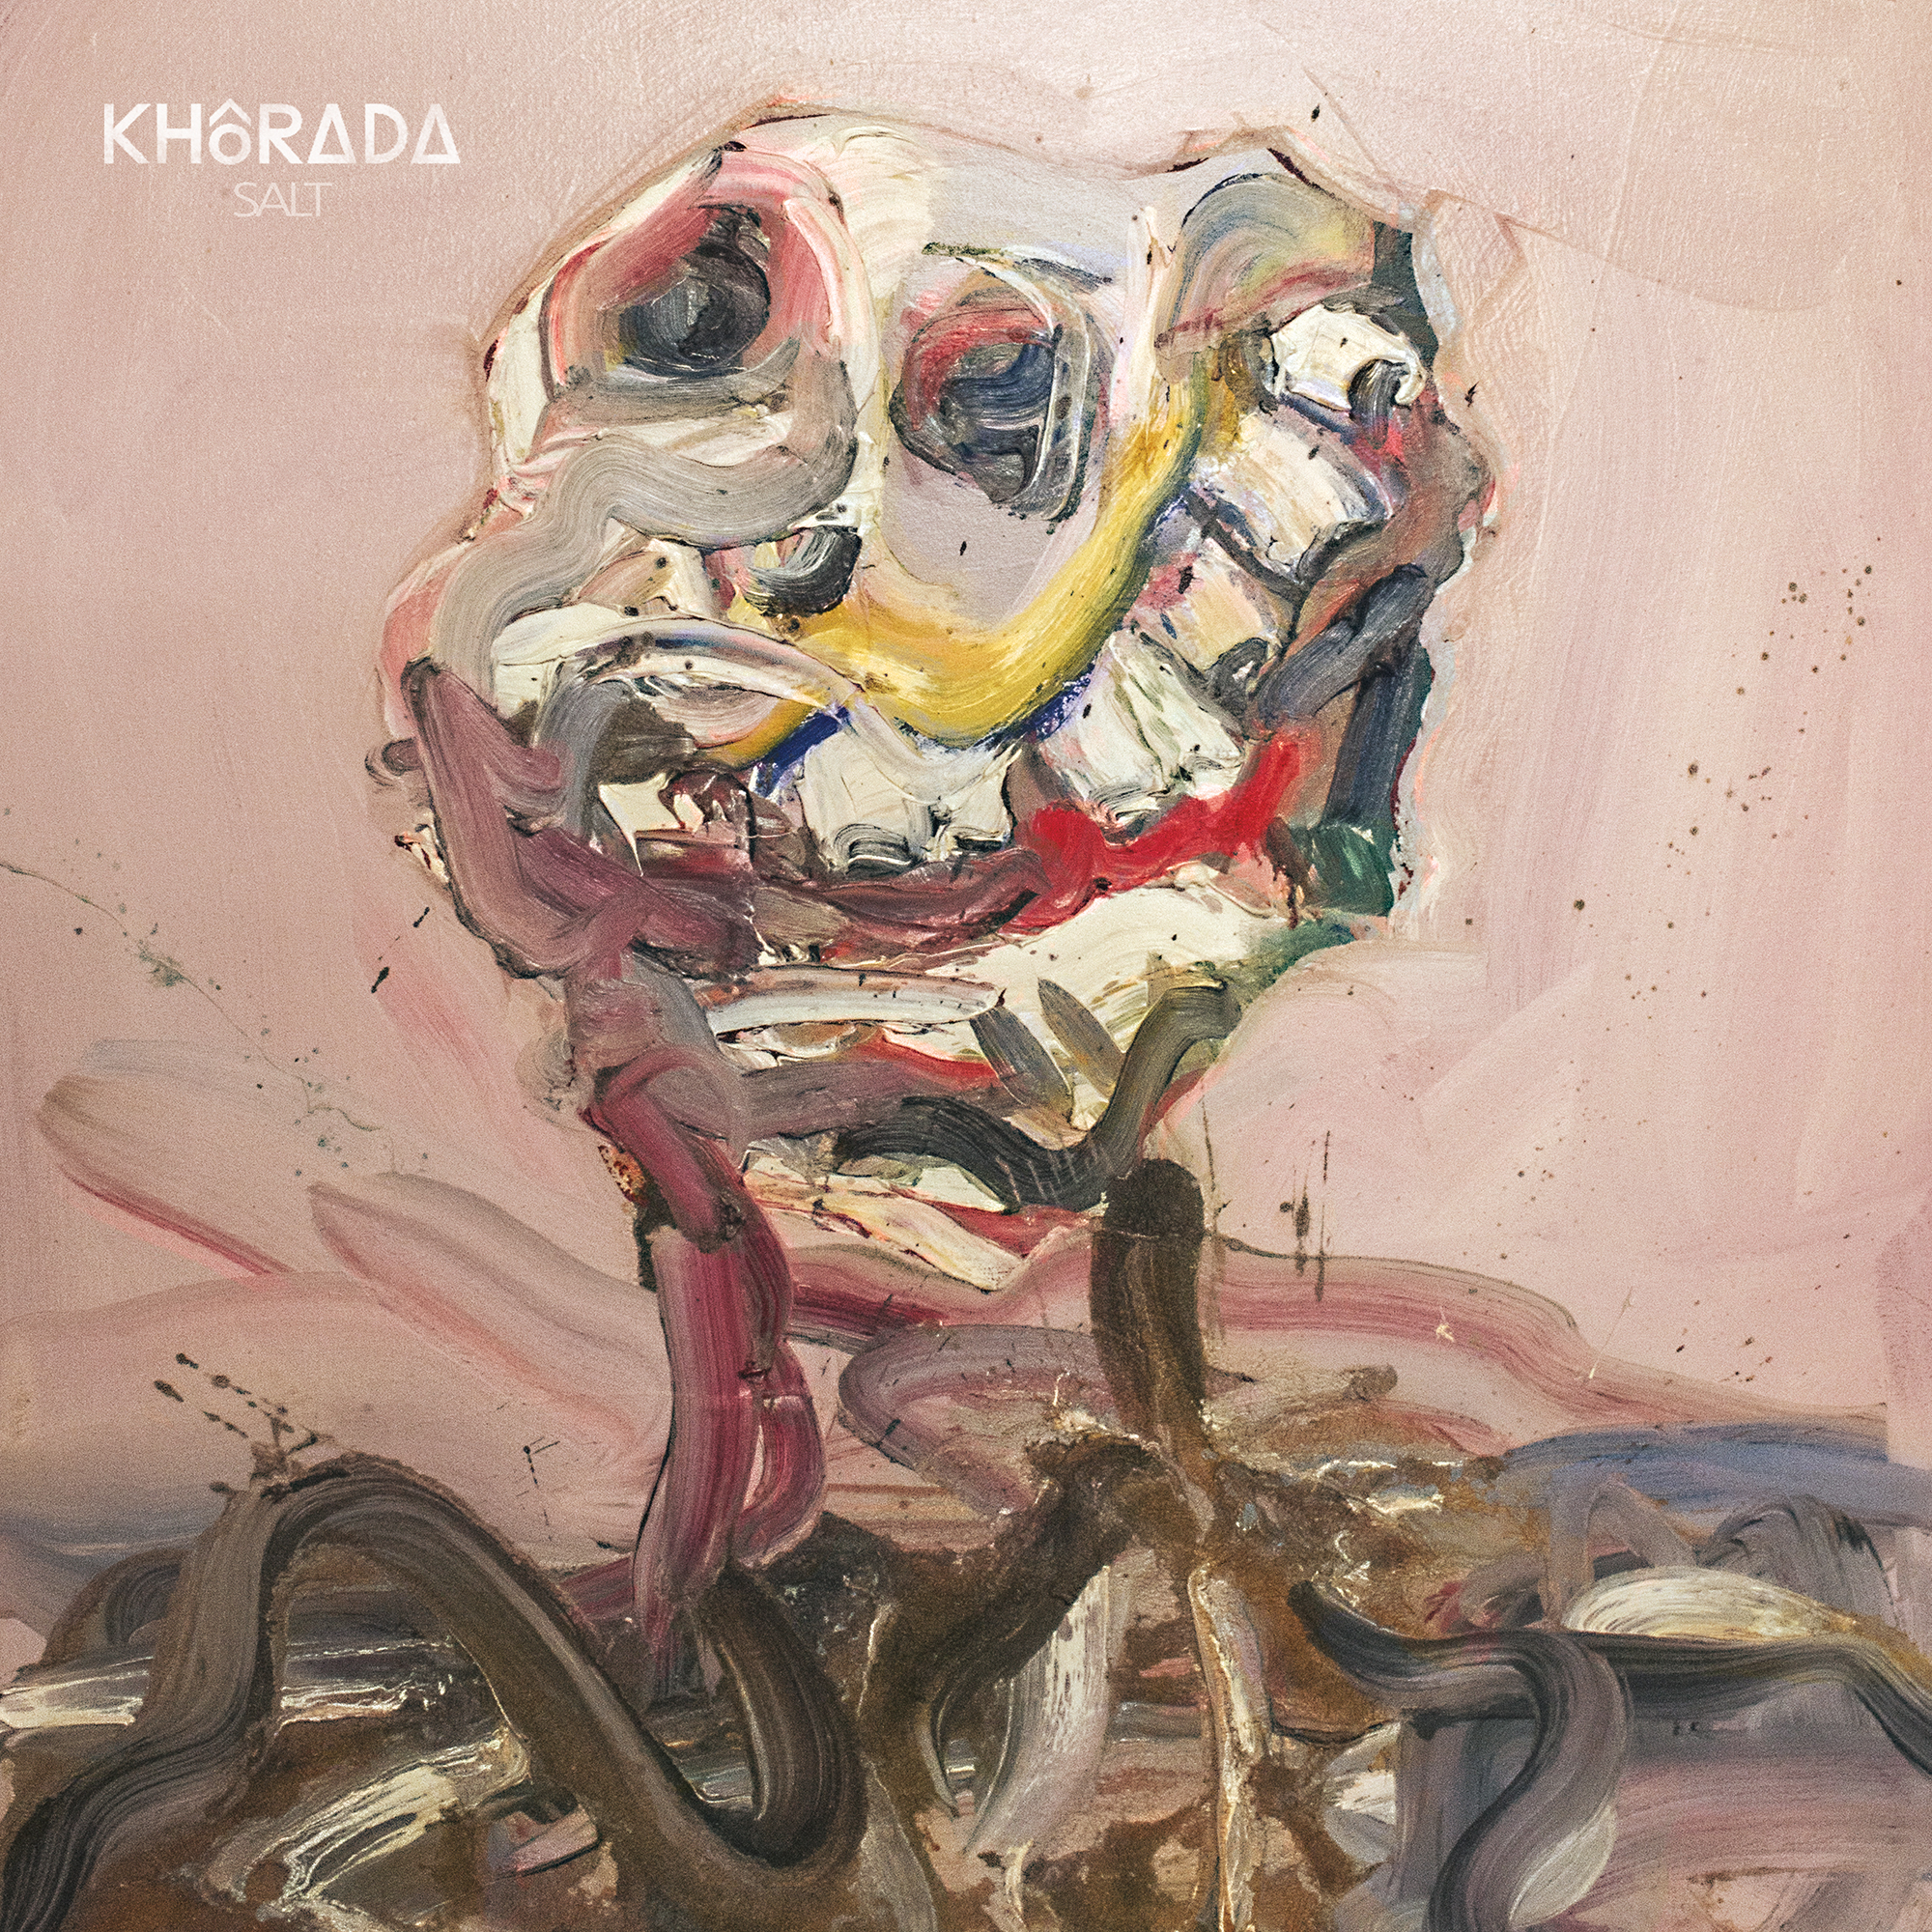 "KHôRADA ""SALT"" album cover"